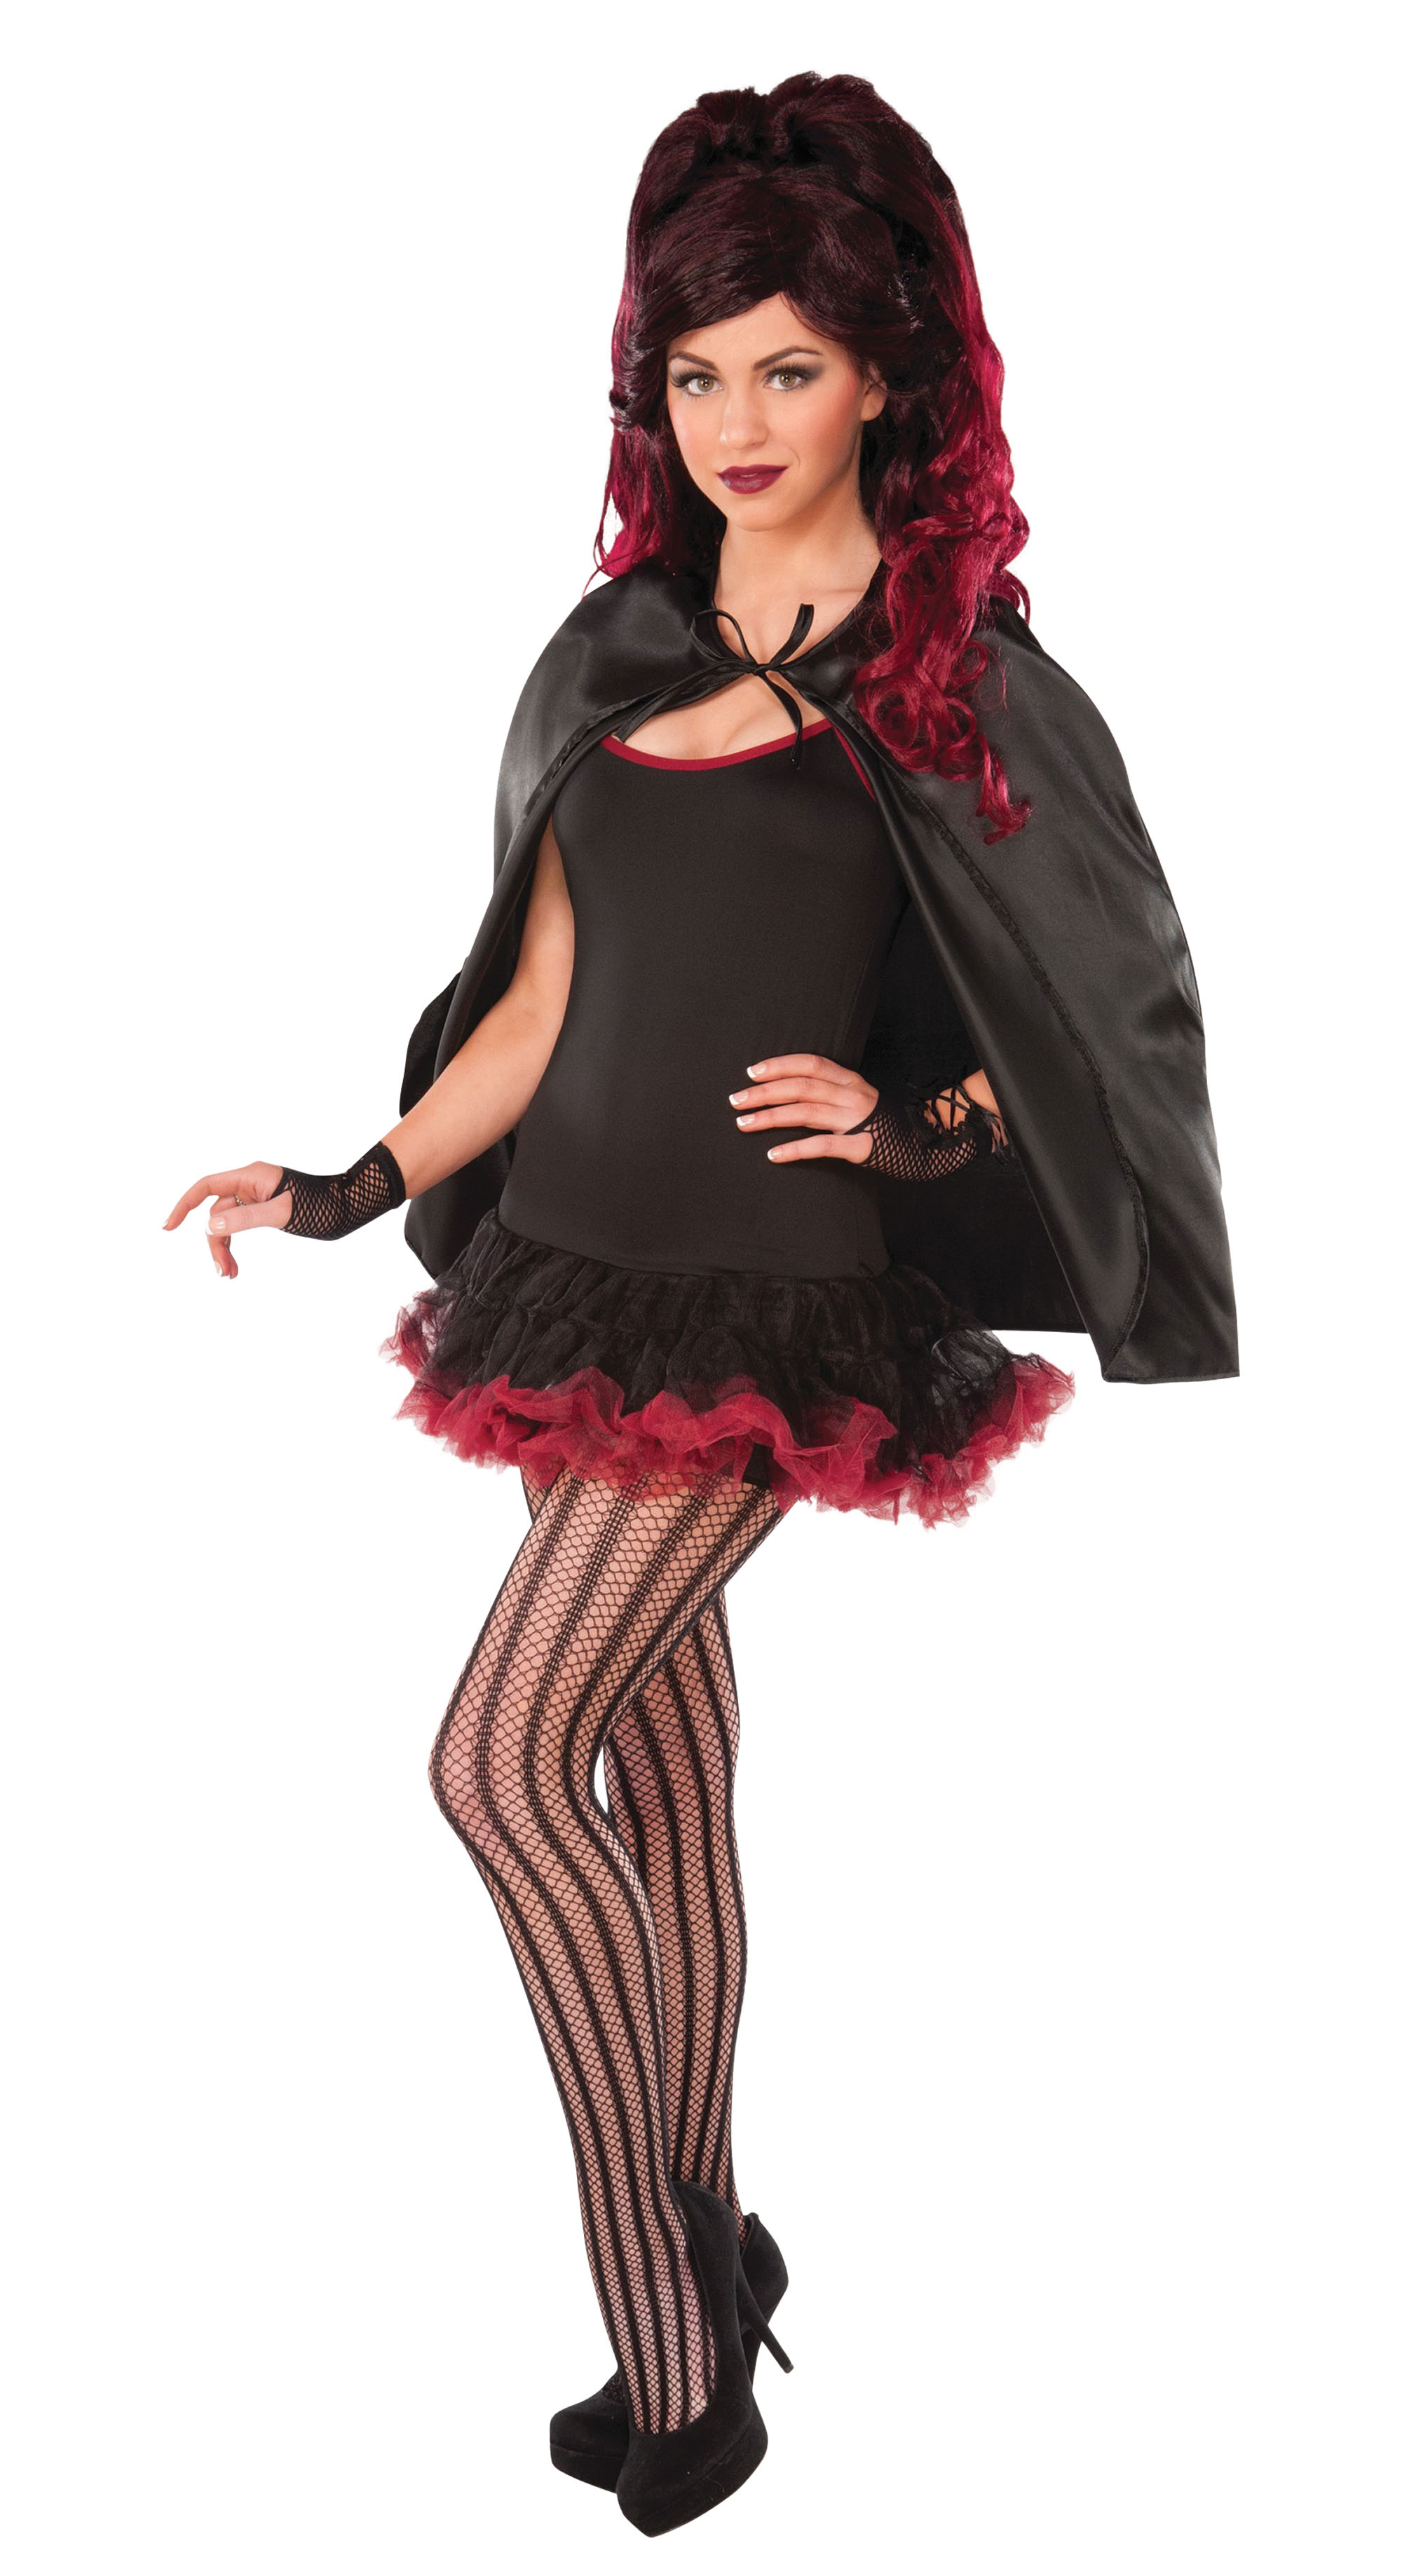 Fantasy Cape Costume Sexy Adult Role Play Fancy Dress Outfit Cosplay